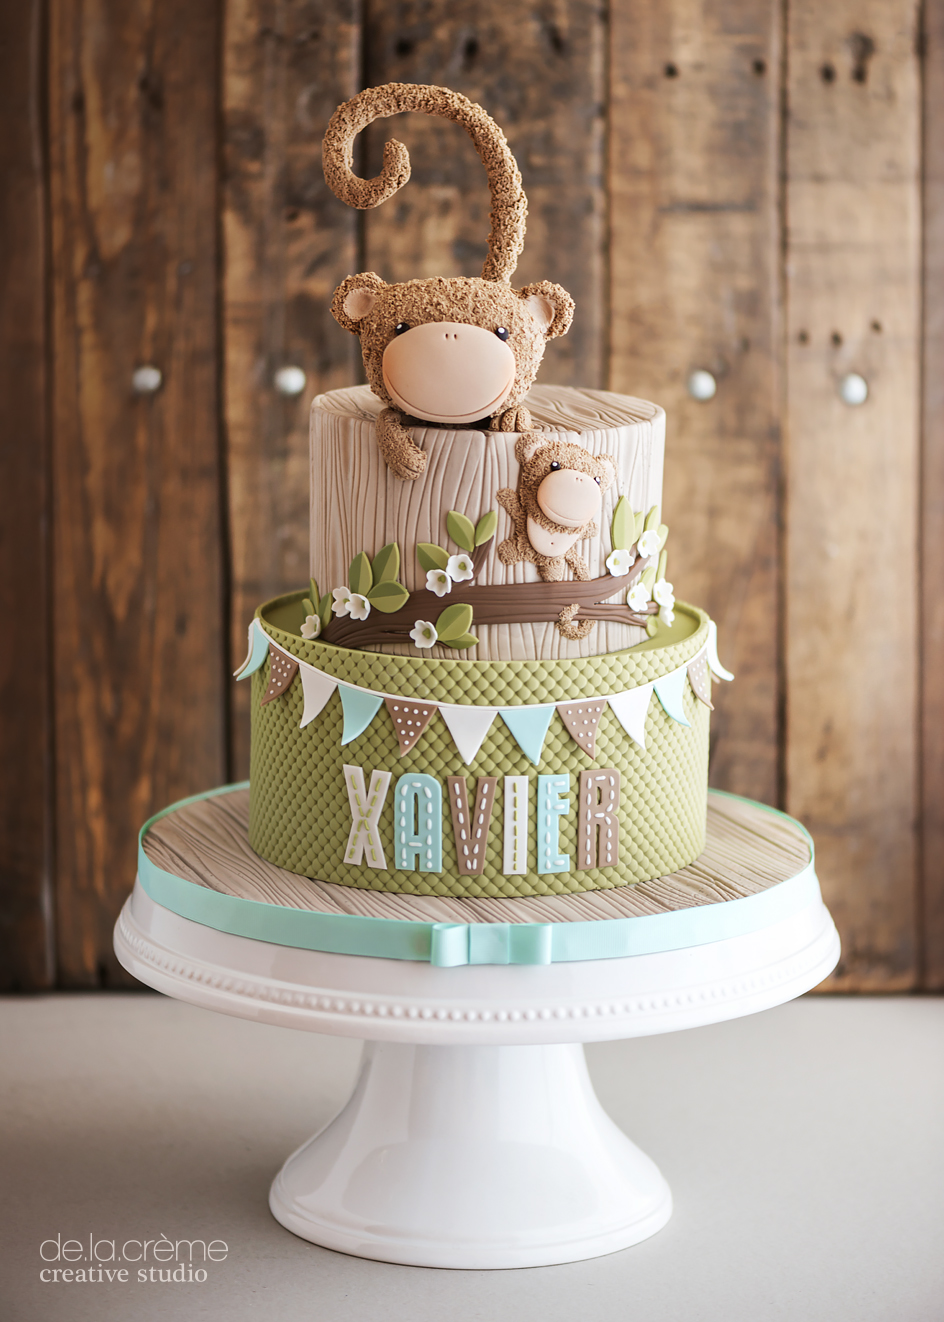 Fuzzy Monkey Birthday Cake De la Crme Creative Studio